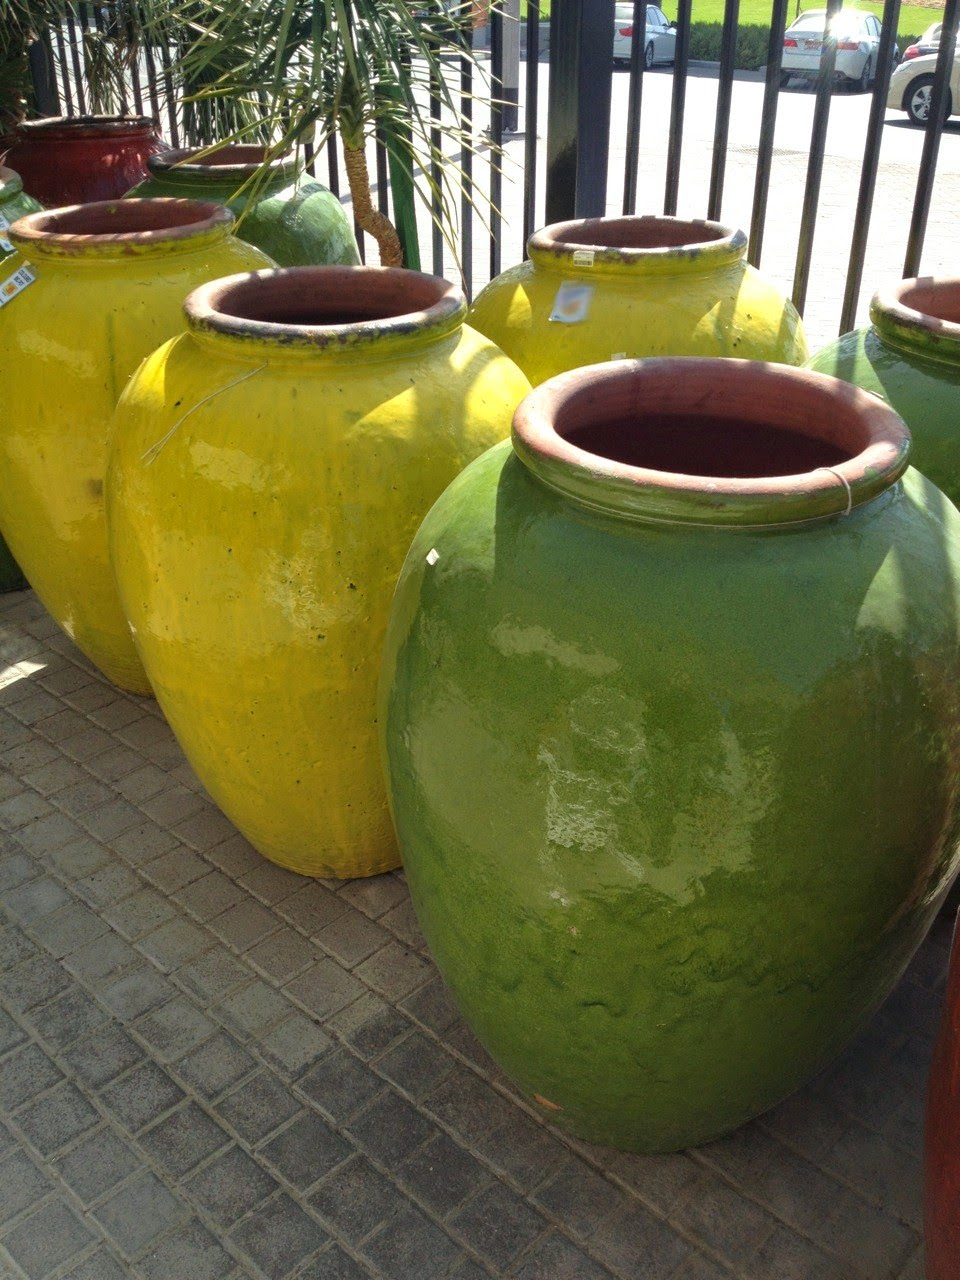 pottery from india